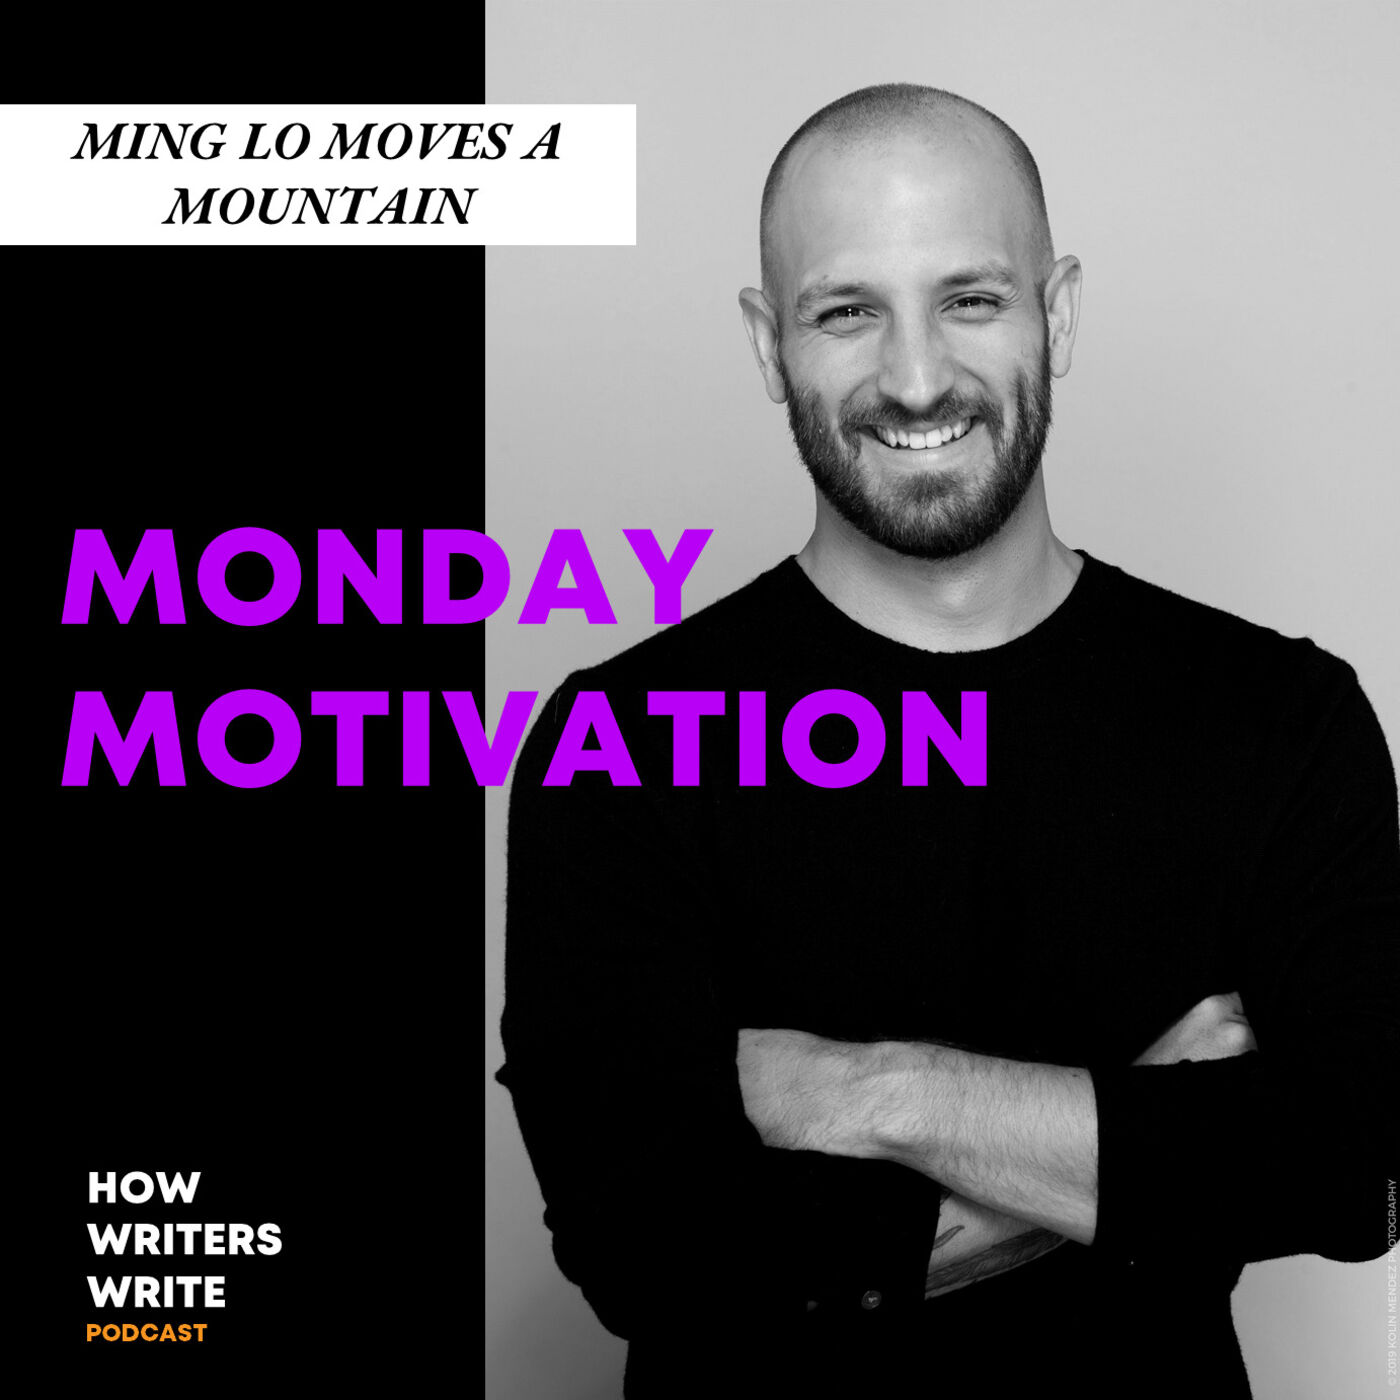 Monday Motivation- Ming Lo Moves the Mountain